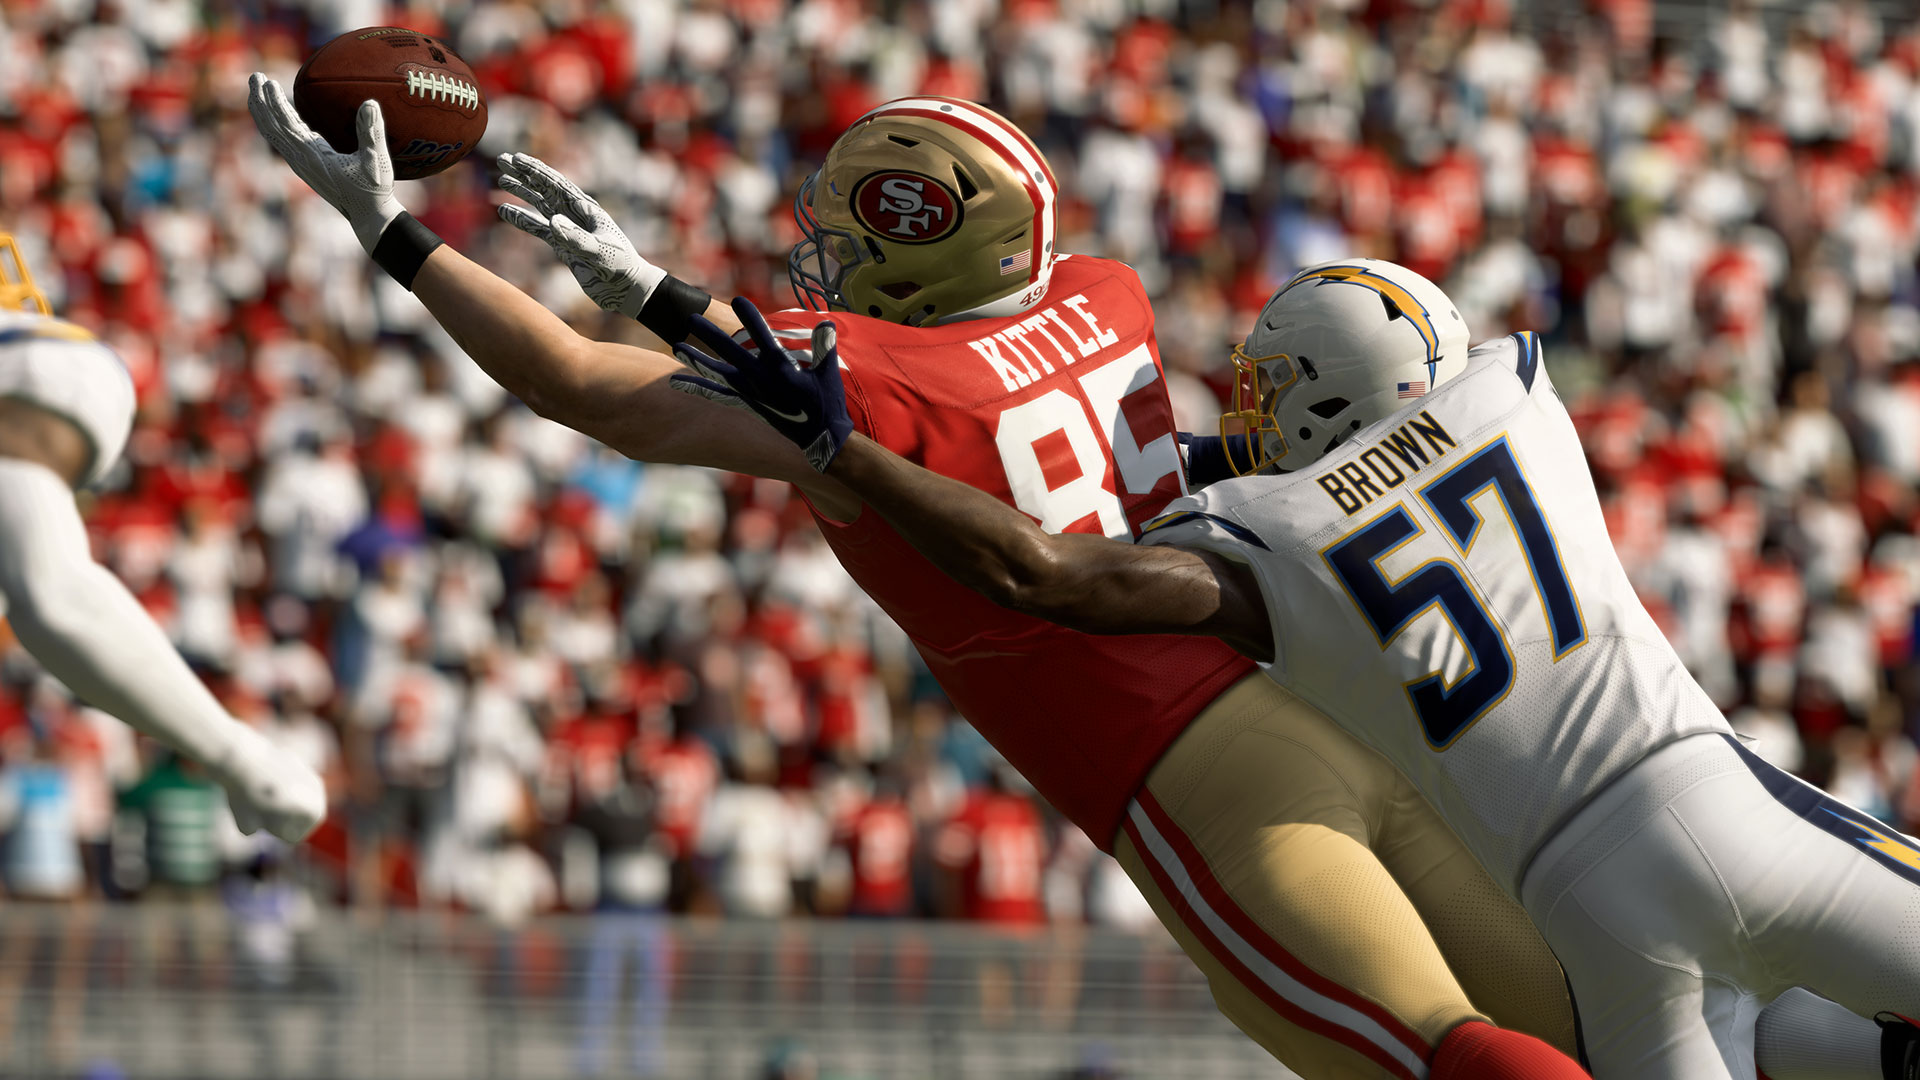 A player trying to make a catch under pressure in Madden NFL 20